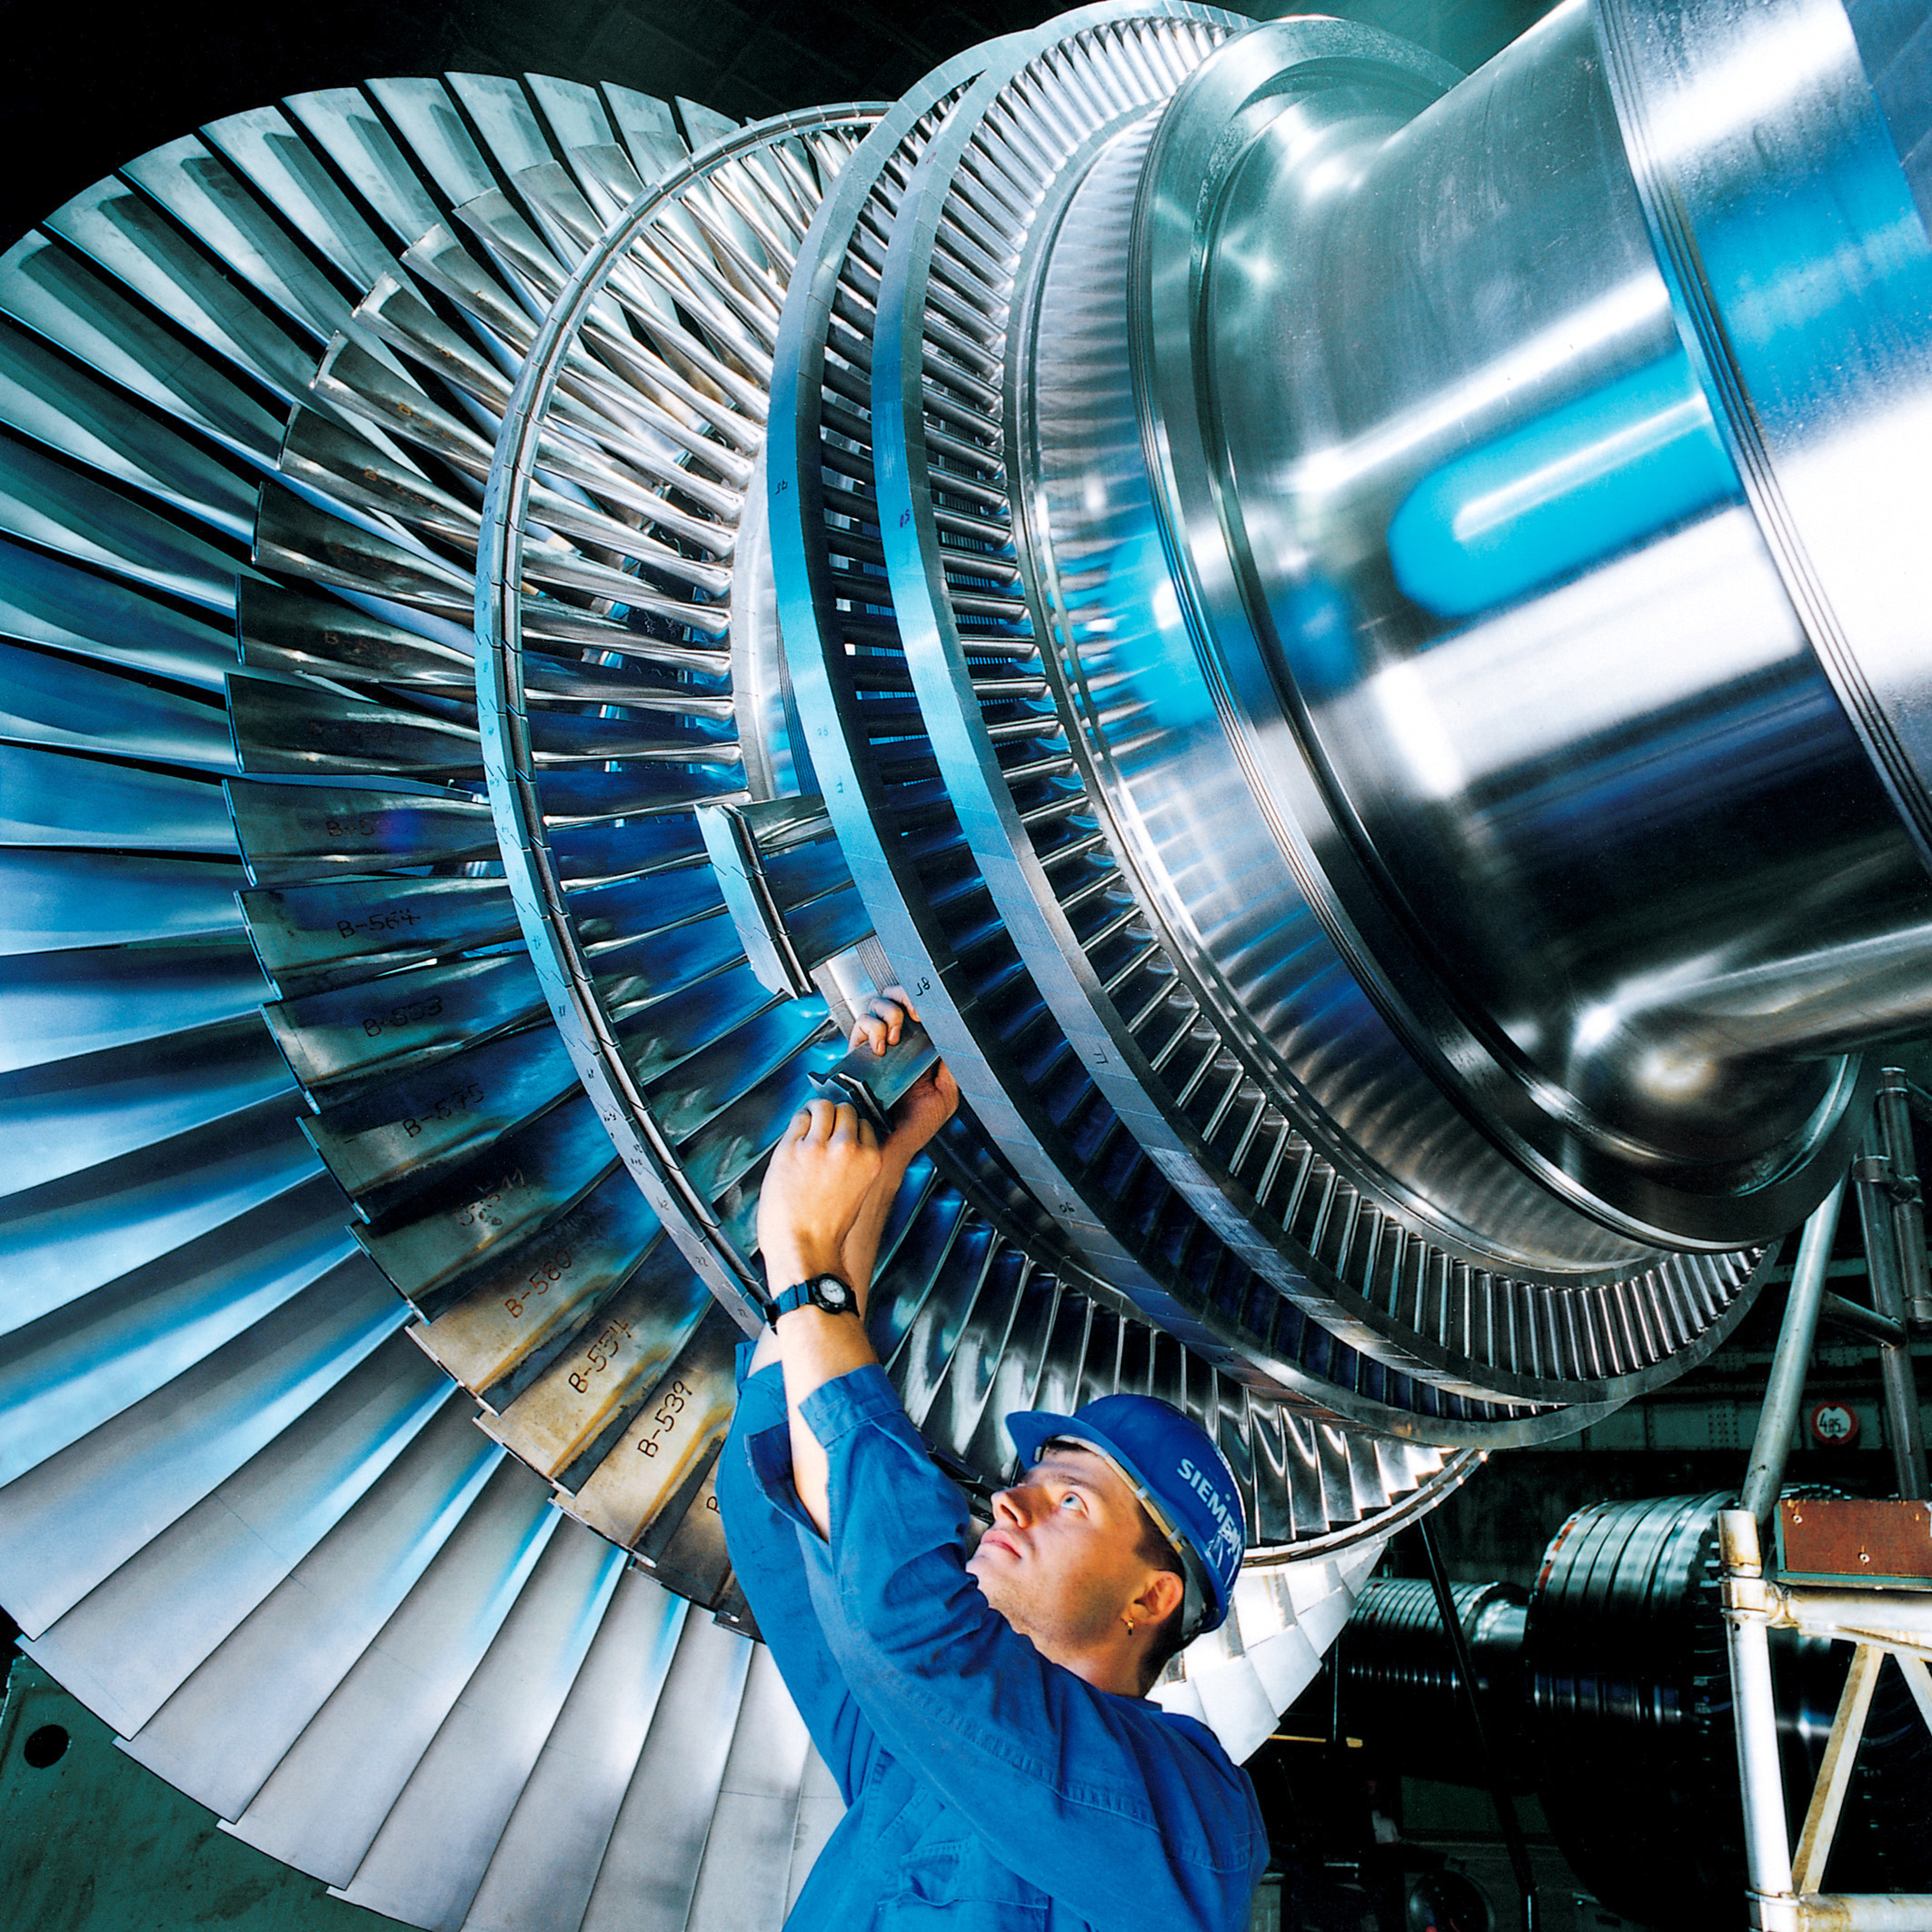 Steam turbine - Wikipedia